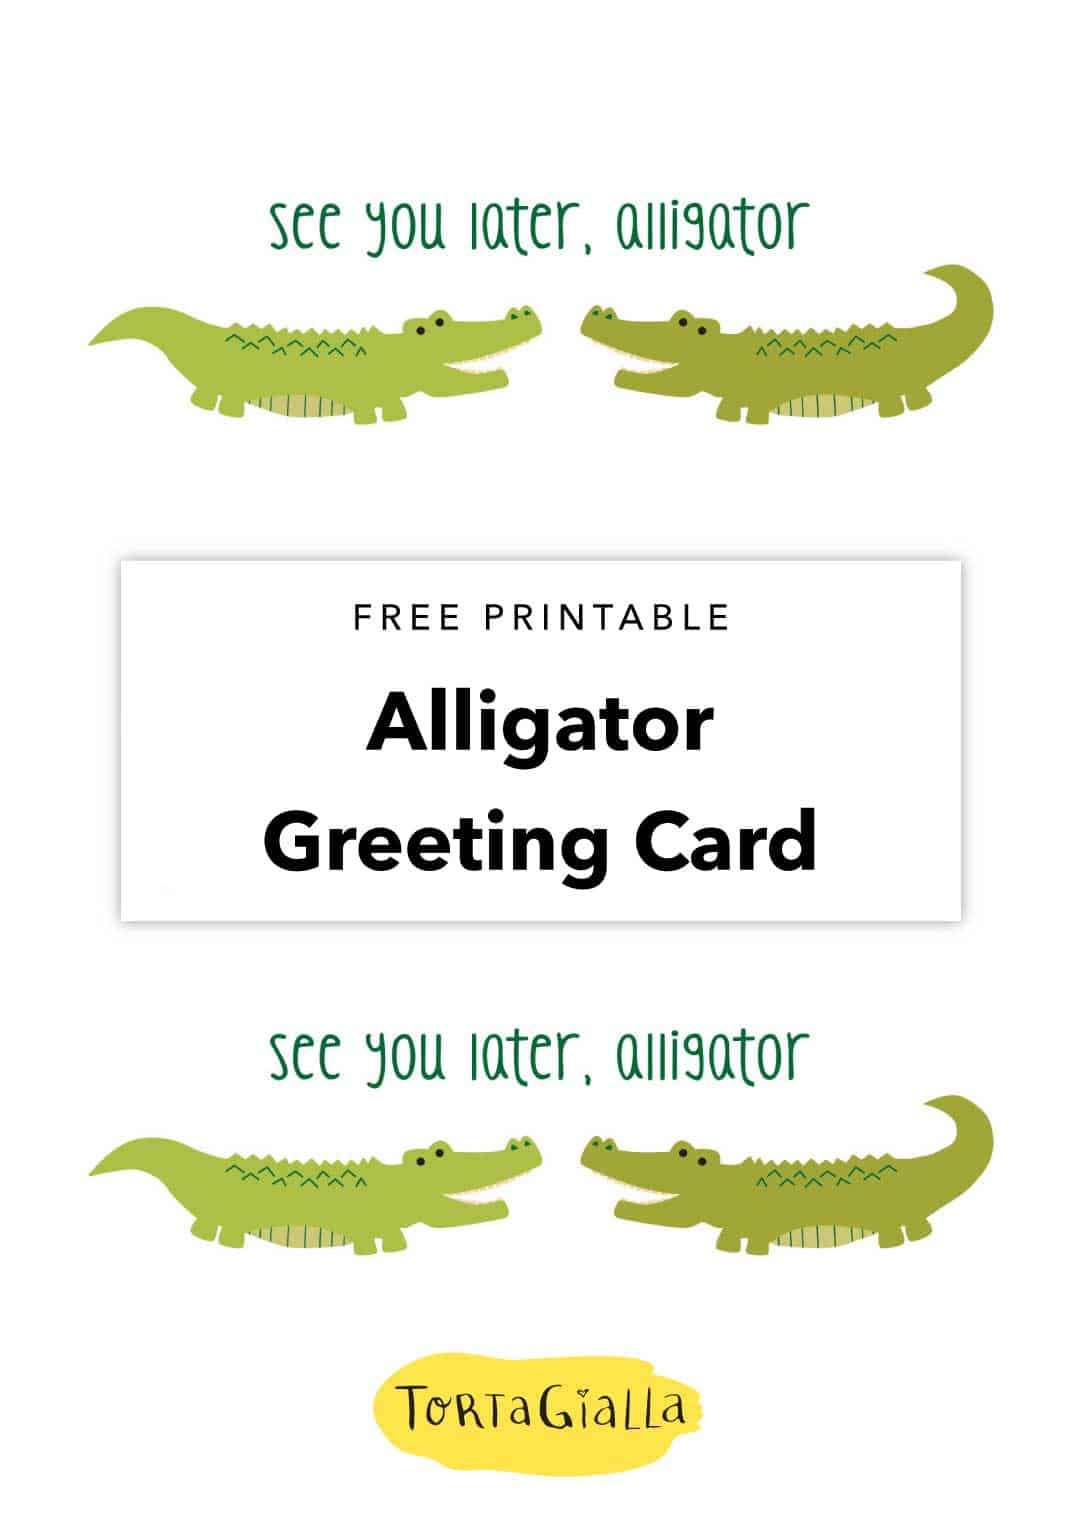 free printable alligator greeting card